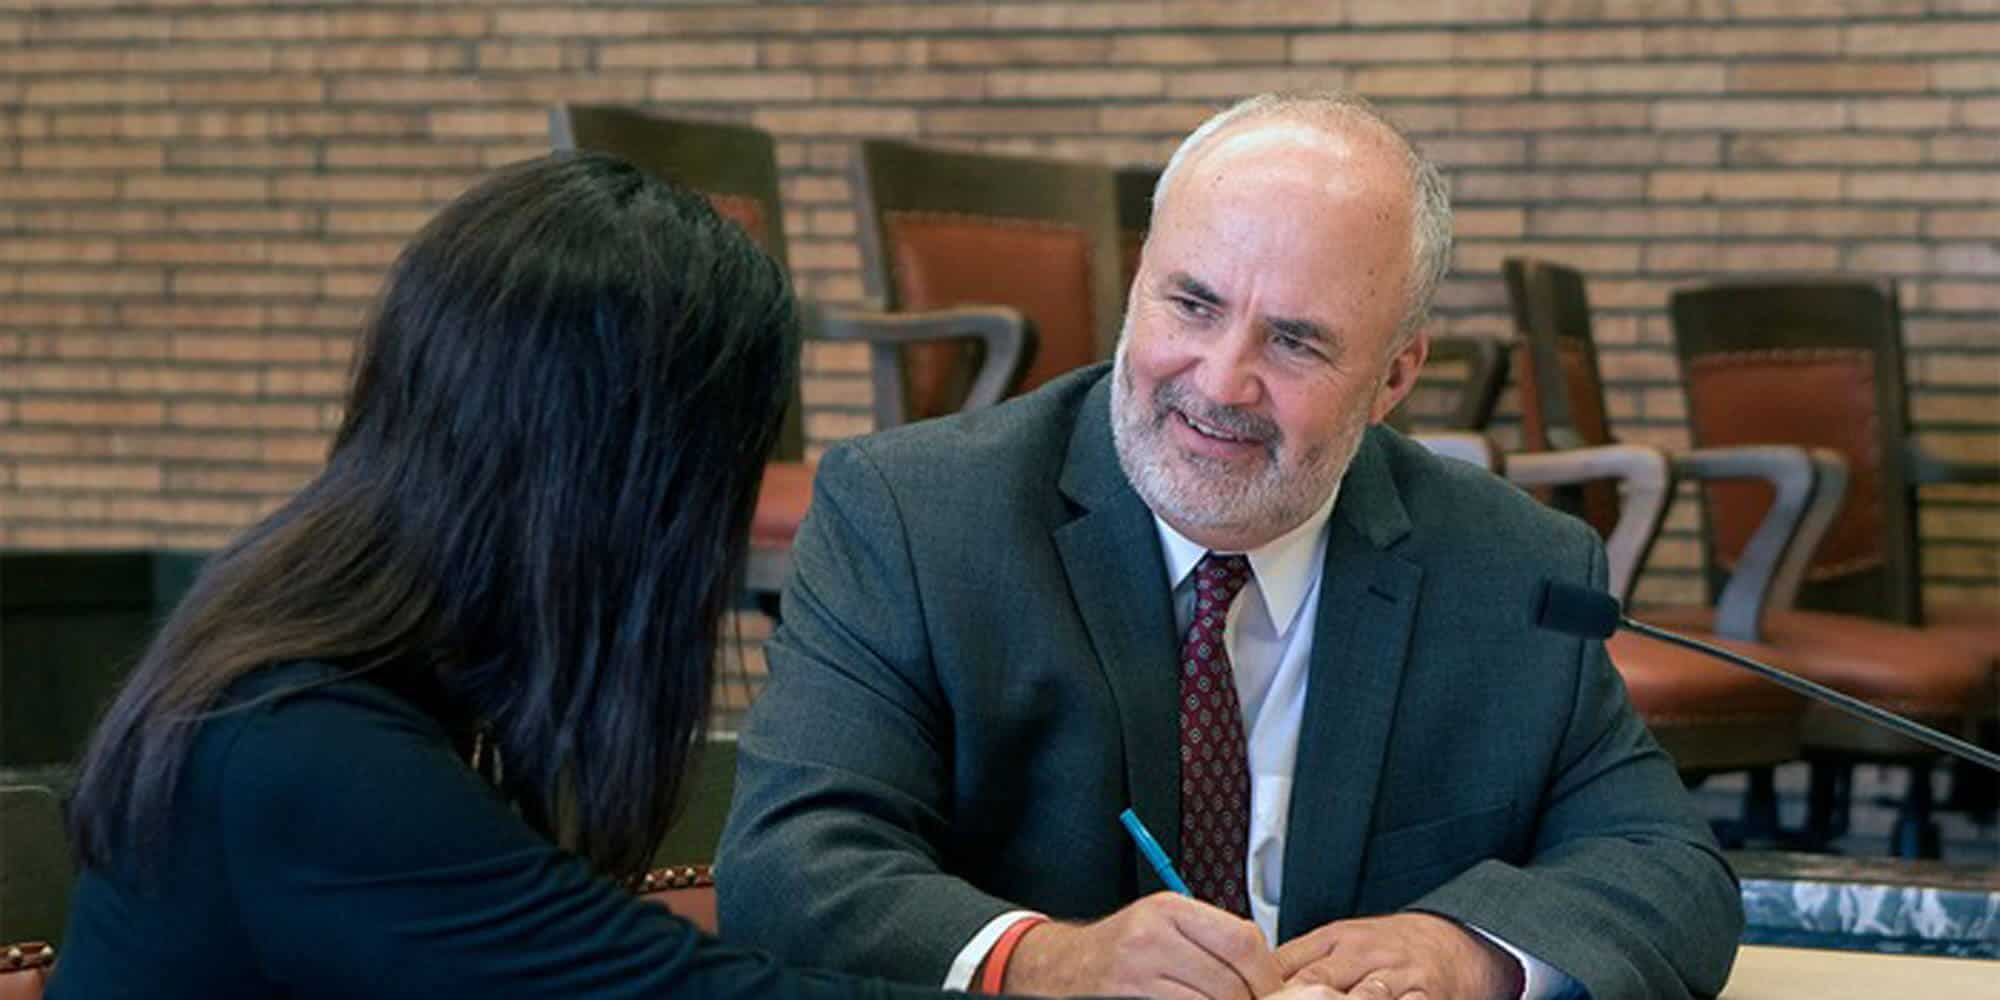 Jim Carlin Meeting with Client